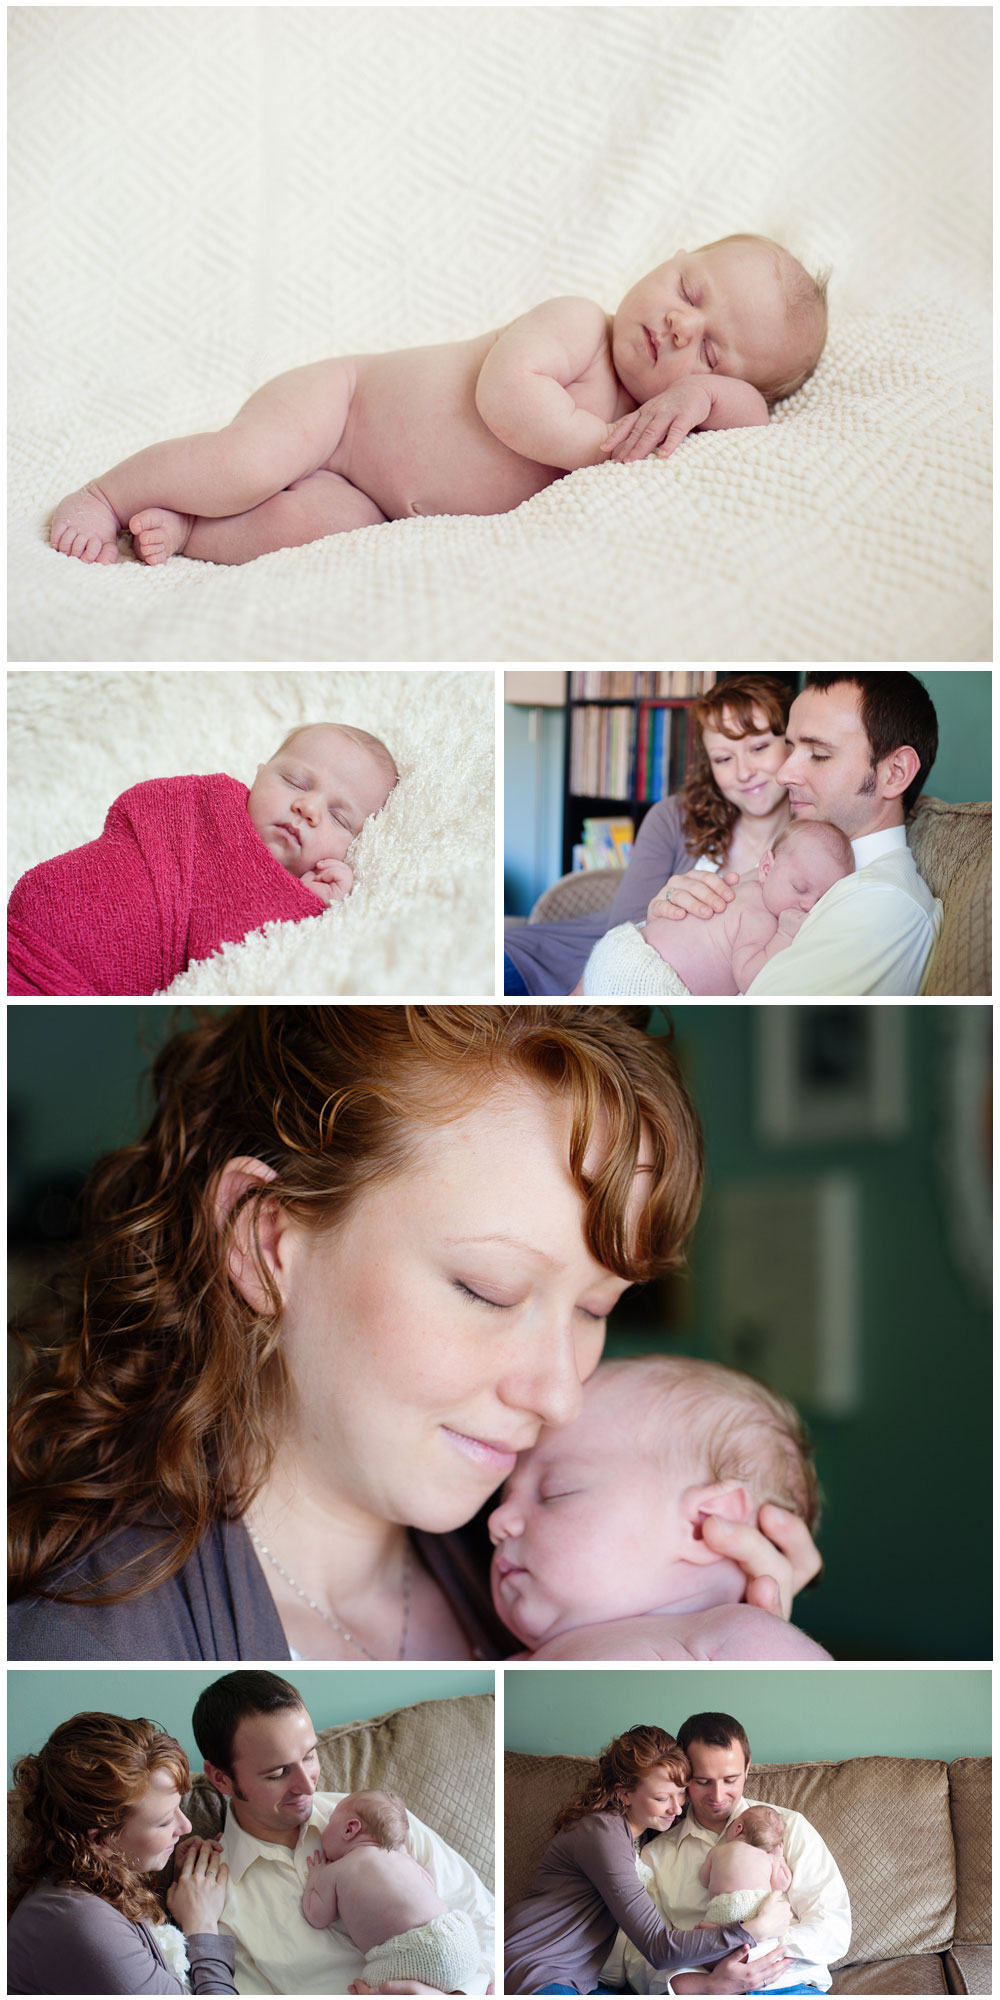 Poppy 2 - Minneapolis Newborn Photographer Megan Crown